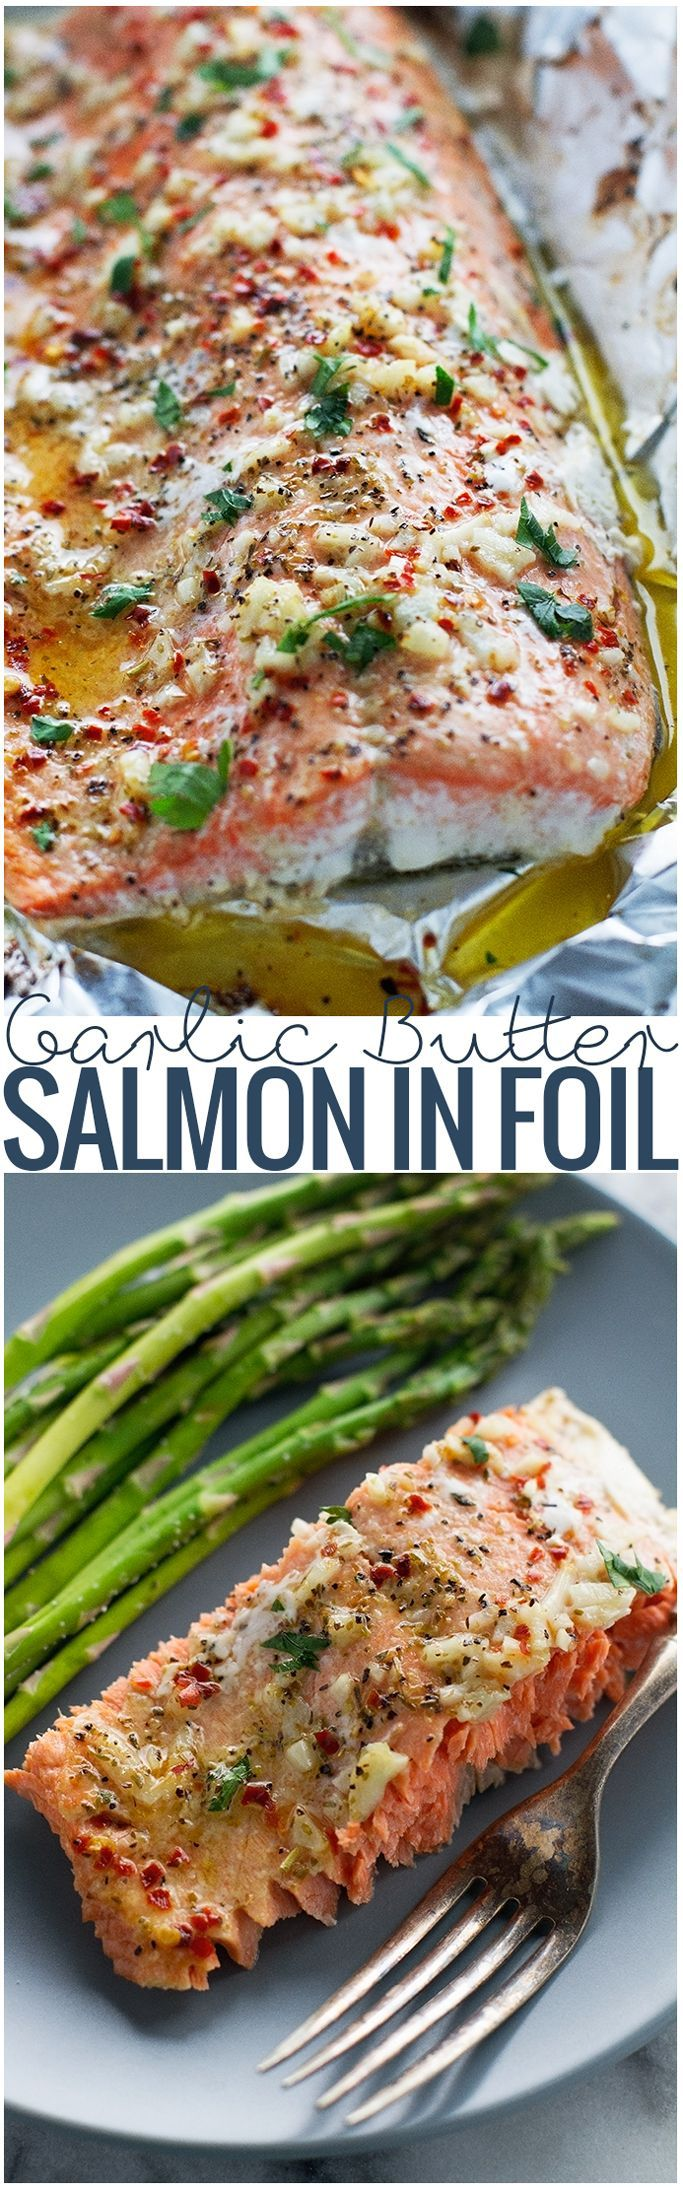 Lemon Garlic Butter Baked Salmon in Foil - This recipe takes less than 30 minutes and is perfect for weeknight dinners!